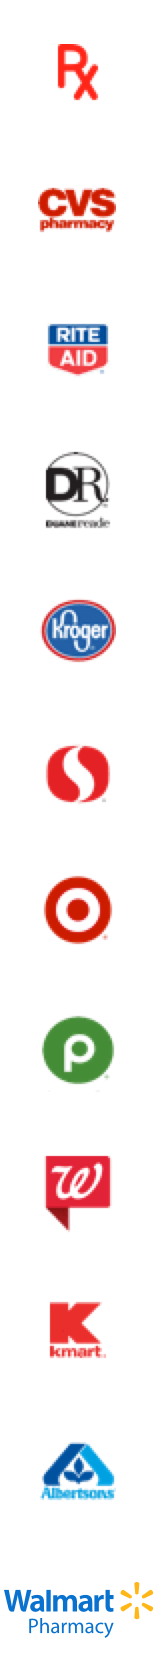 pharmacy logo icon